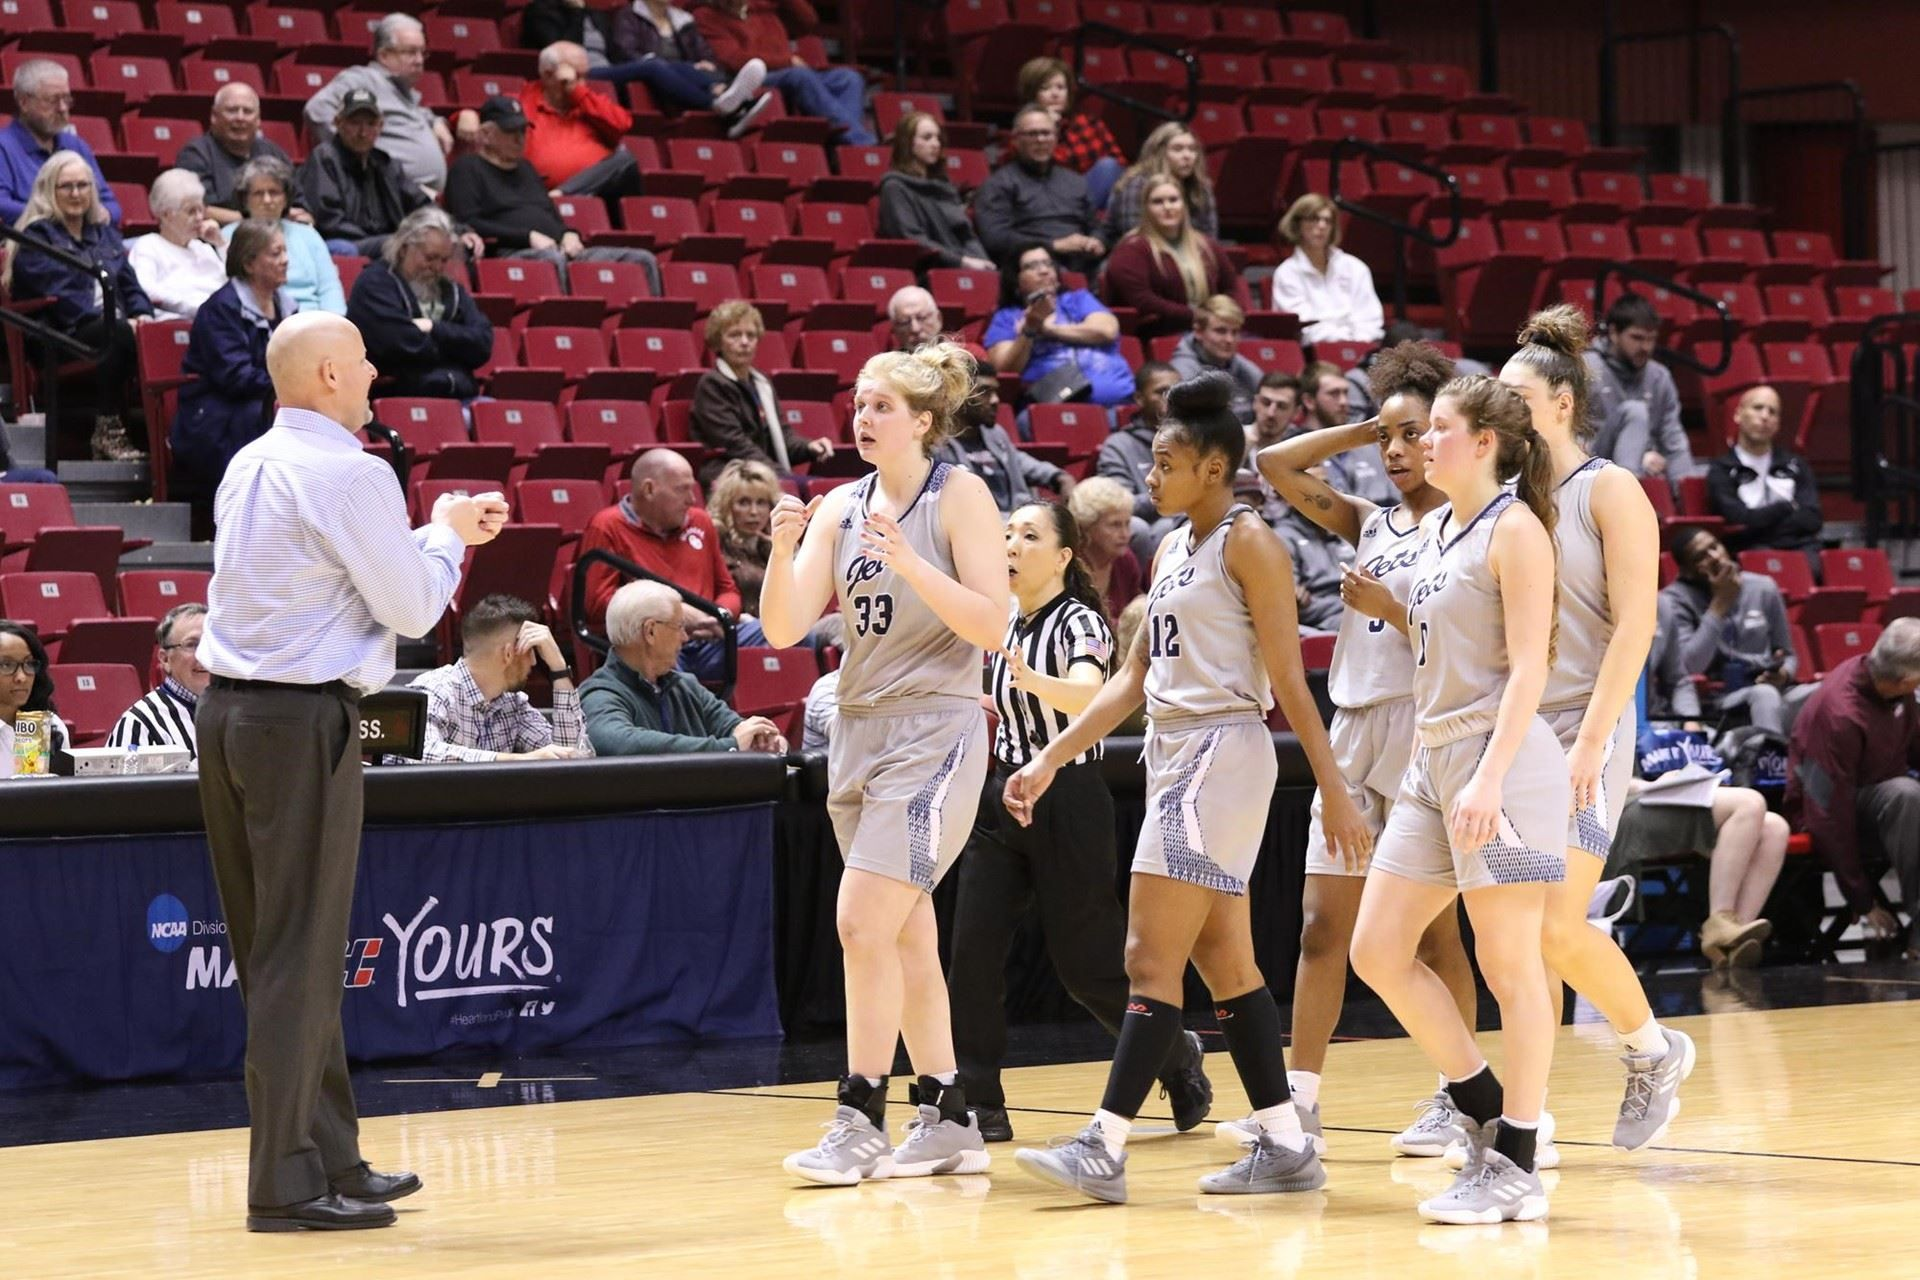 Men's, women's basketball comes to an end